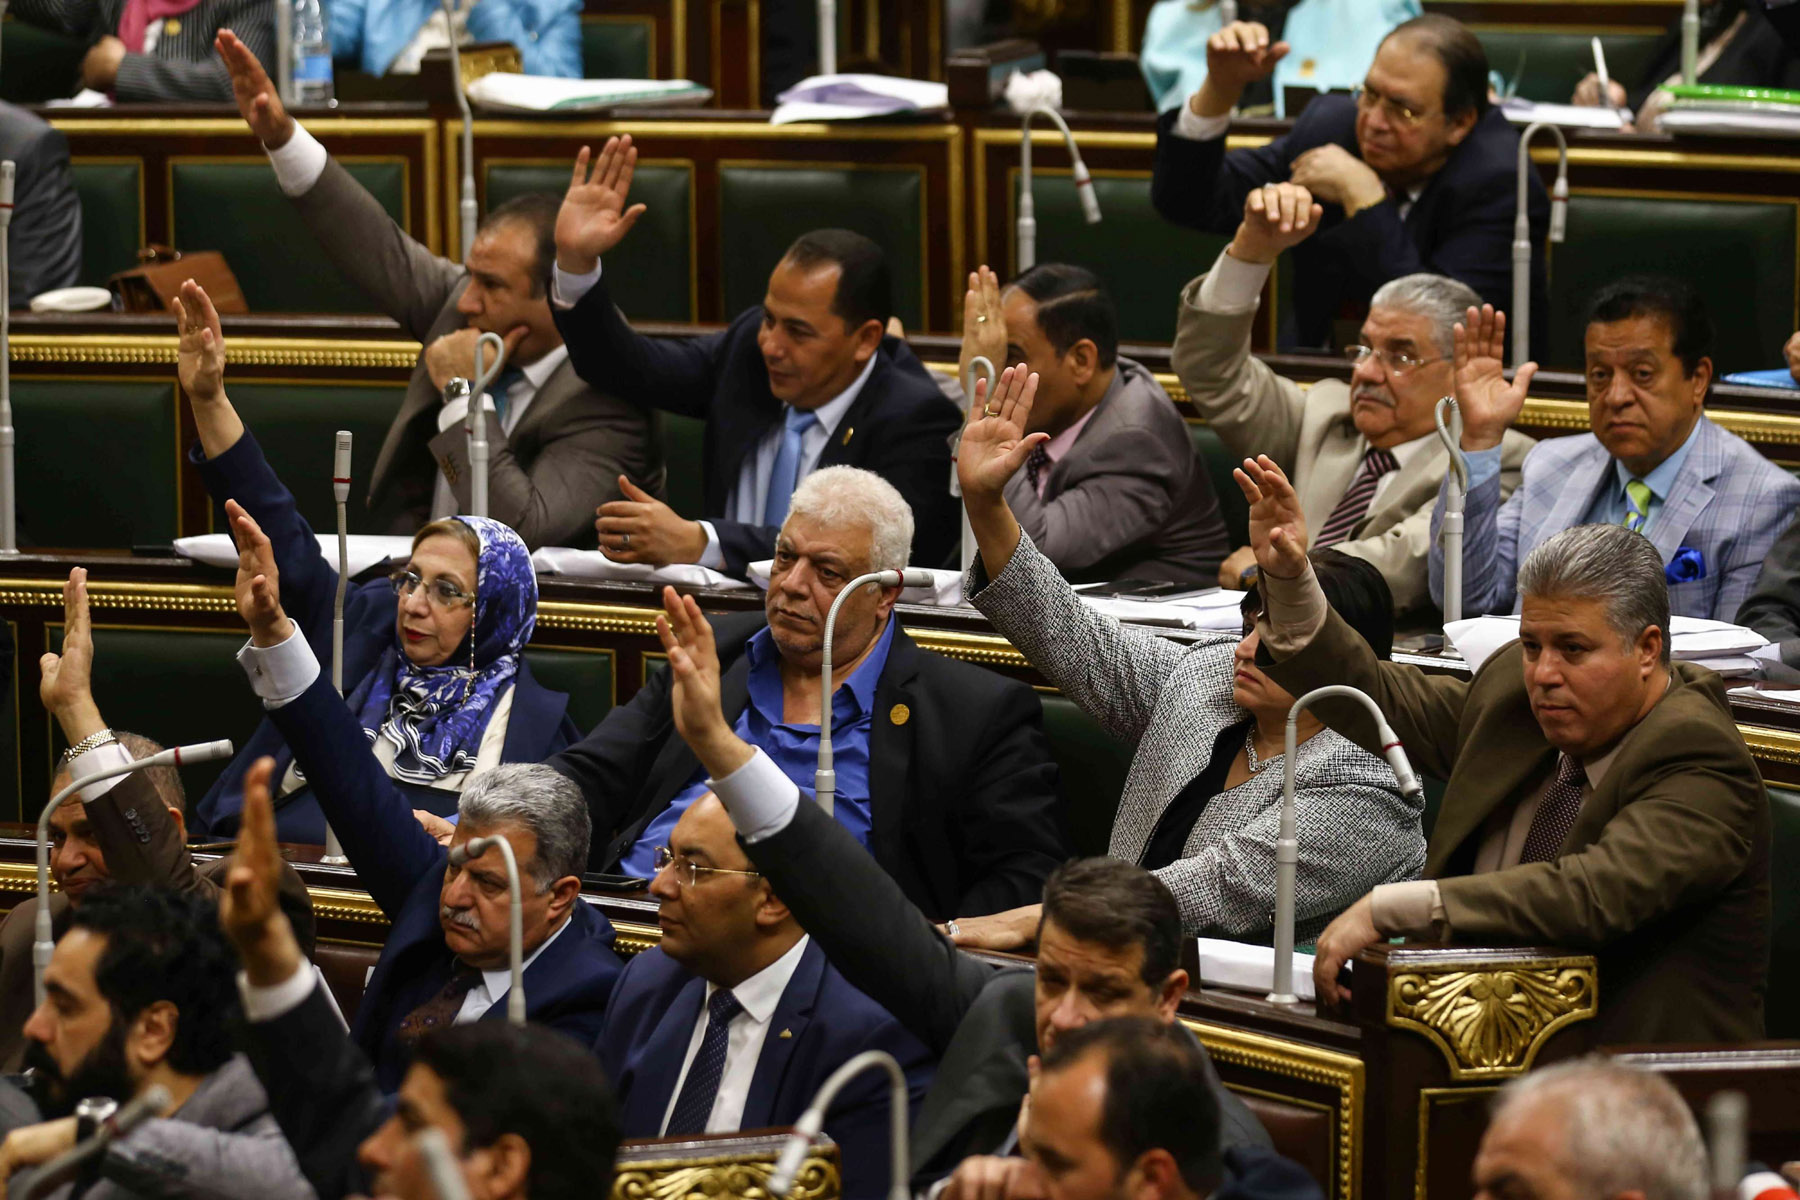 Egyptian MPs vote, during a parliamentary session in Cairo, on proposed constitutional amendments, last April. (DPA)